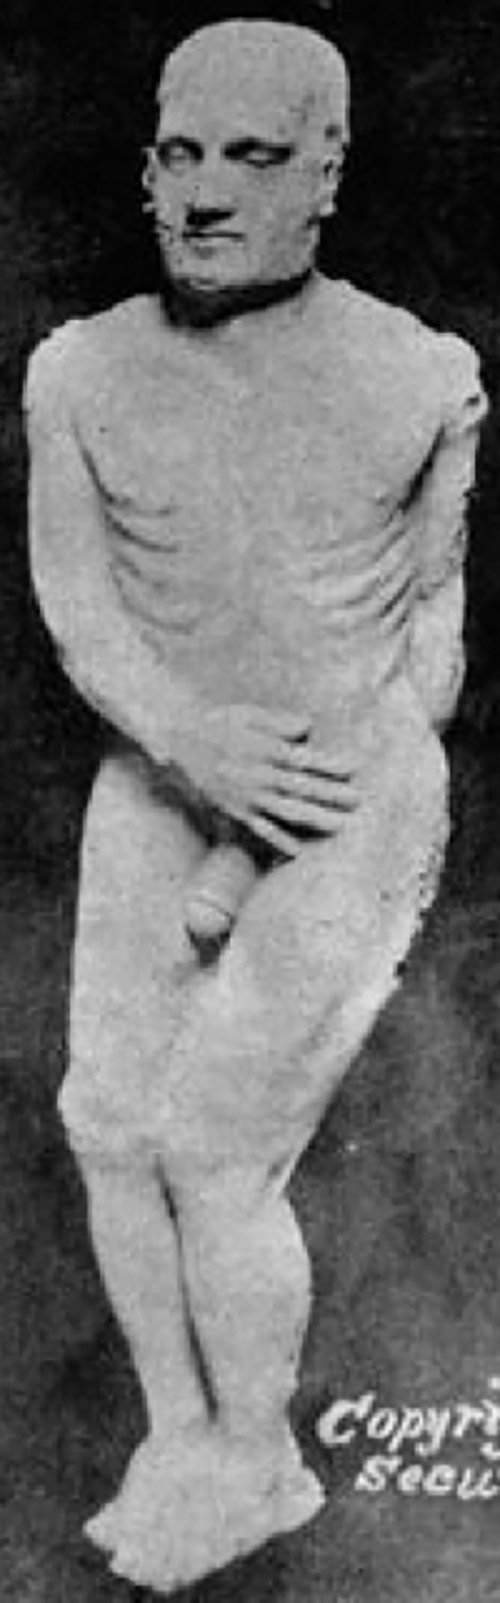 cardiff giant full body